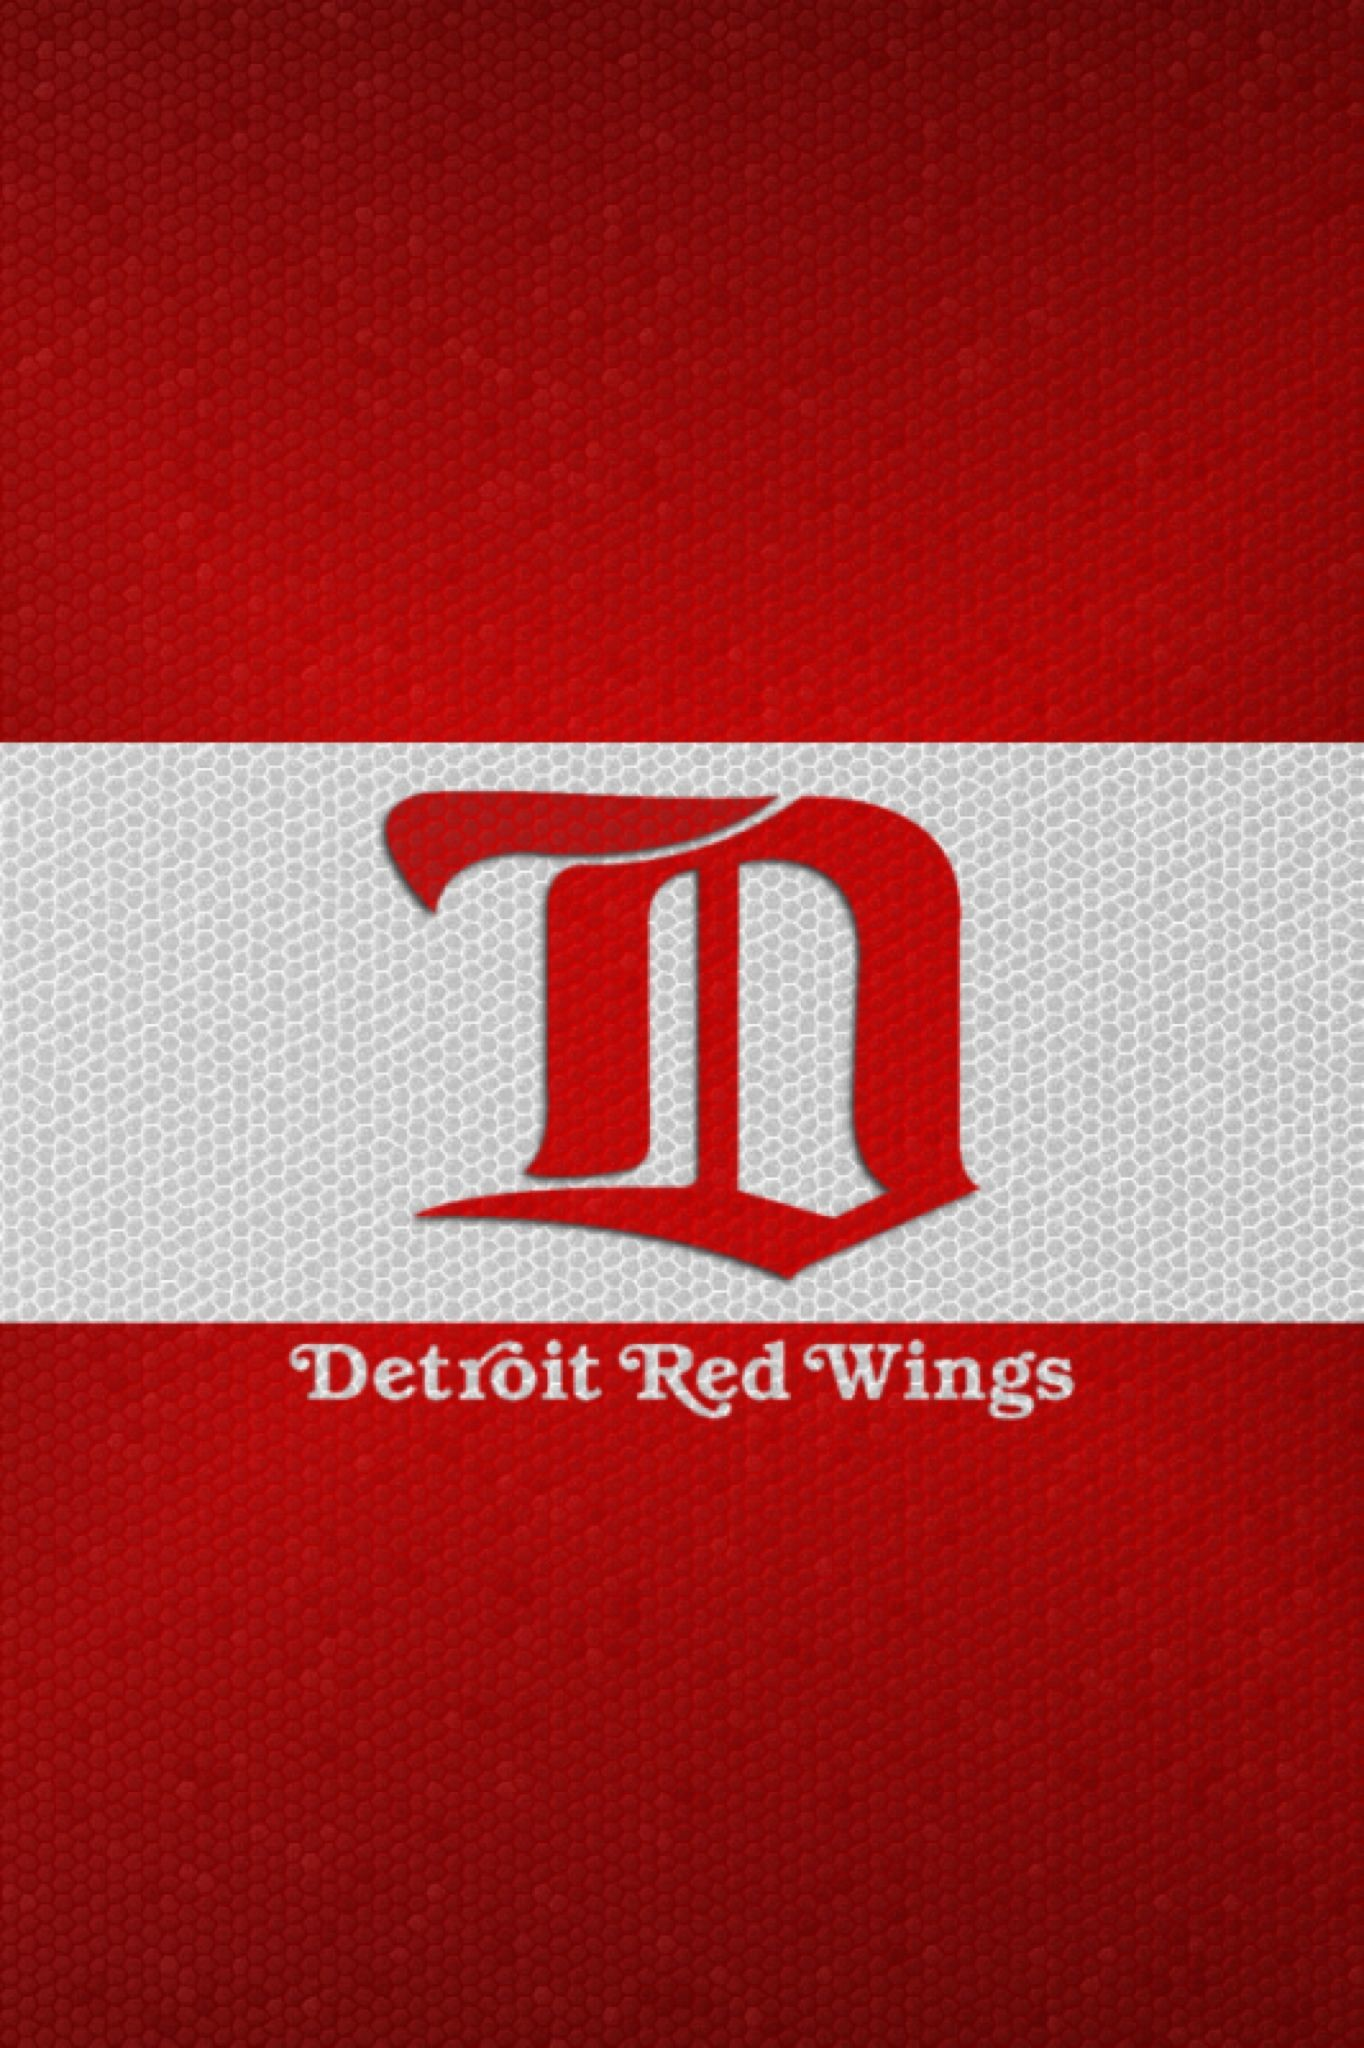 Detroit Red Wings Wallpapers Wallpapertag